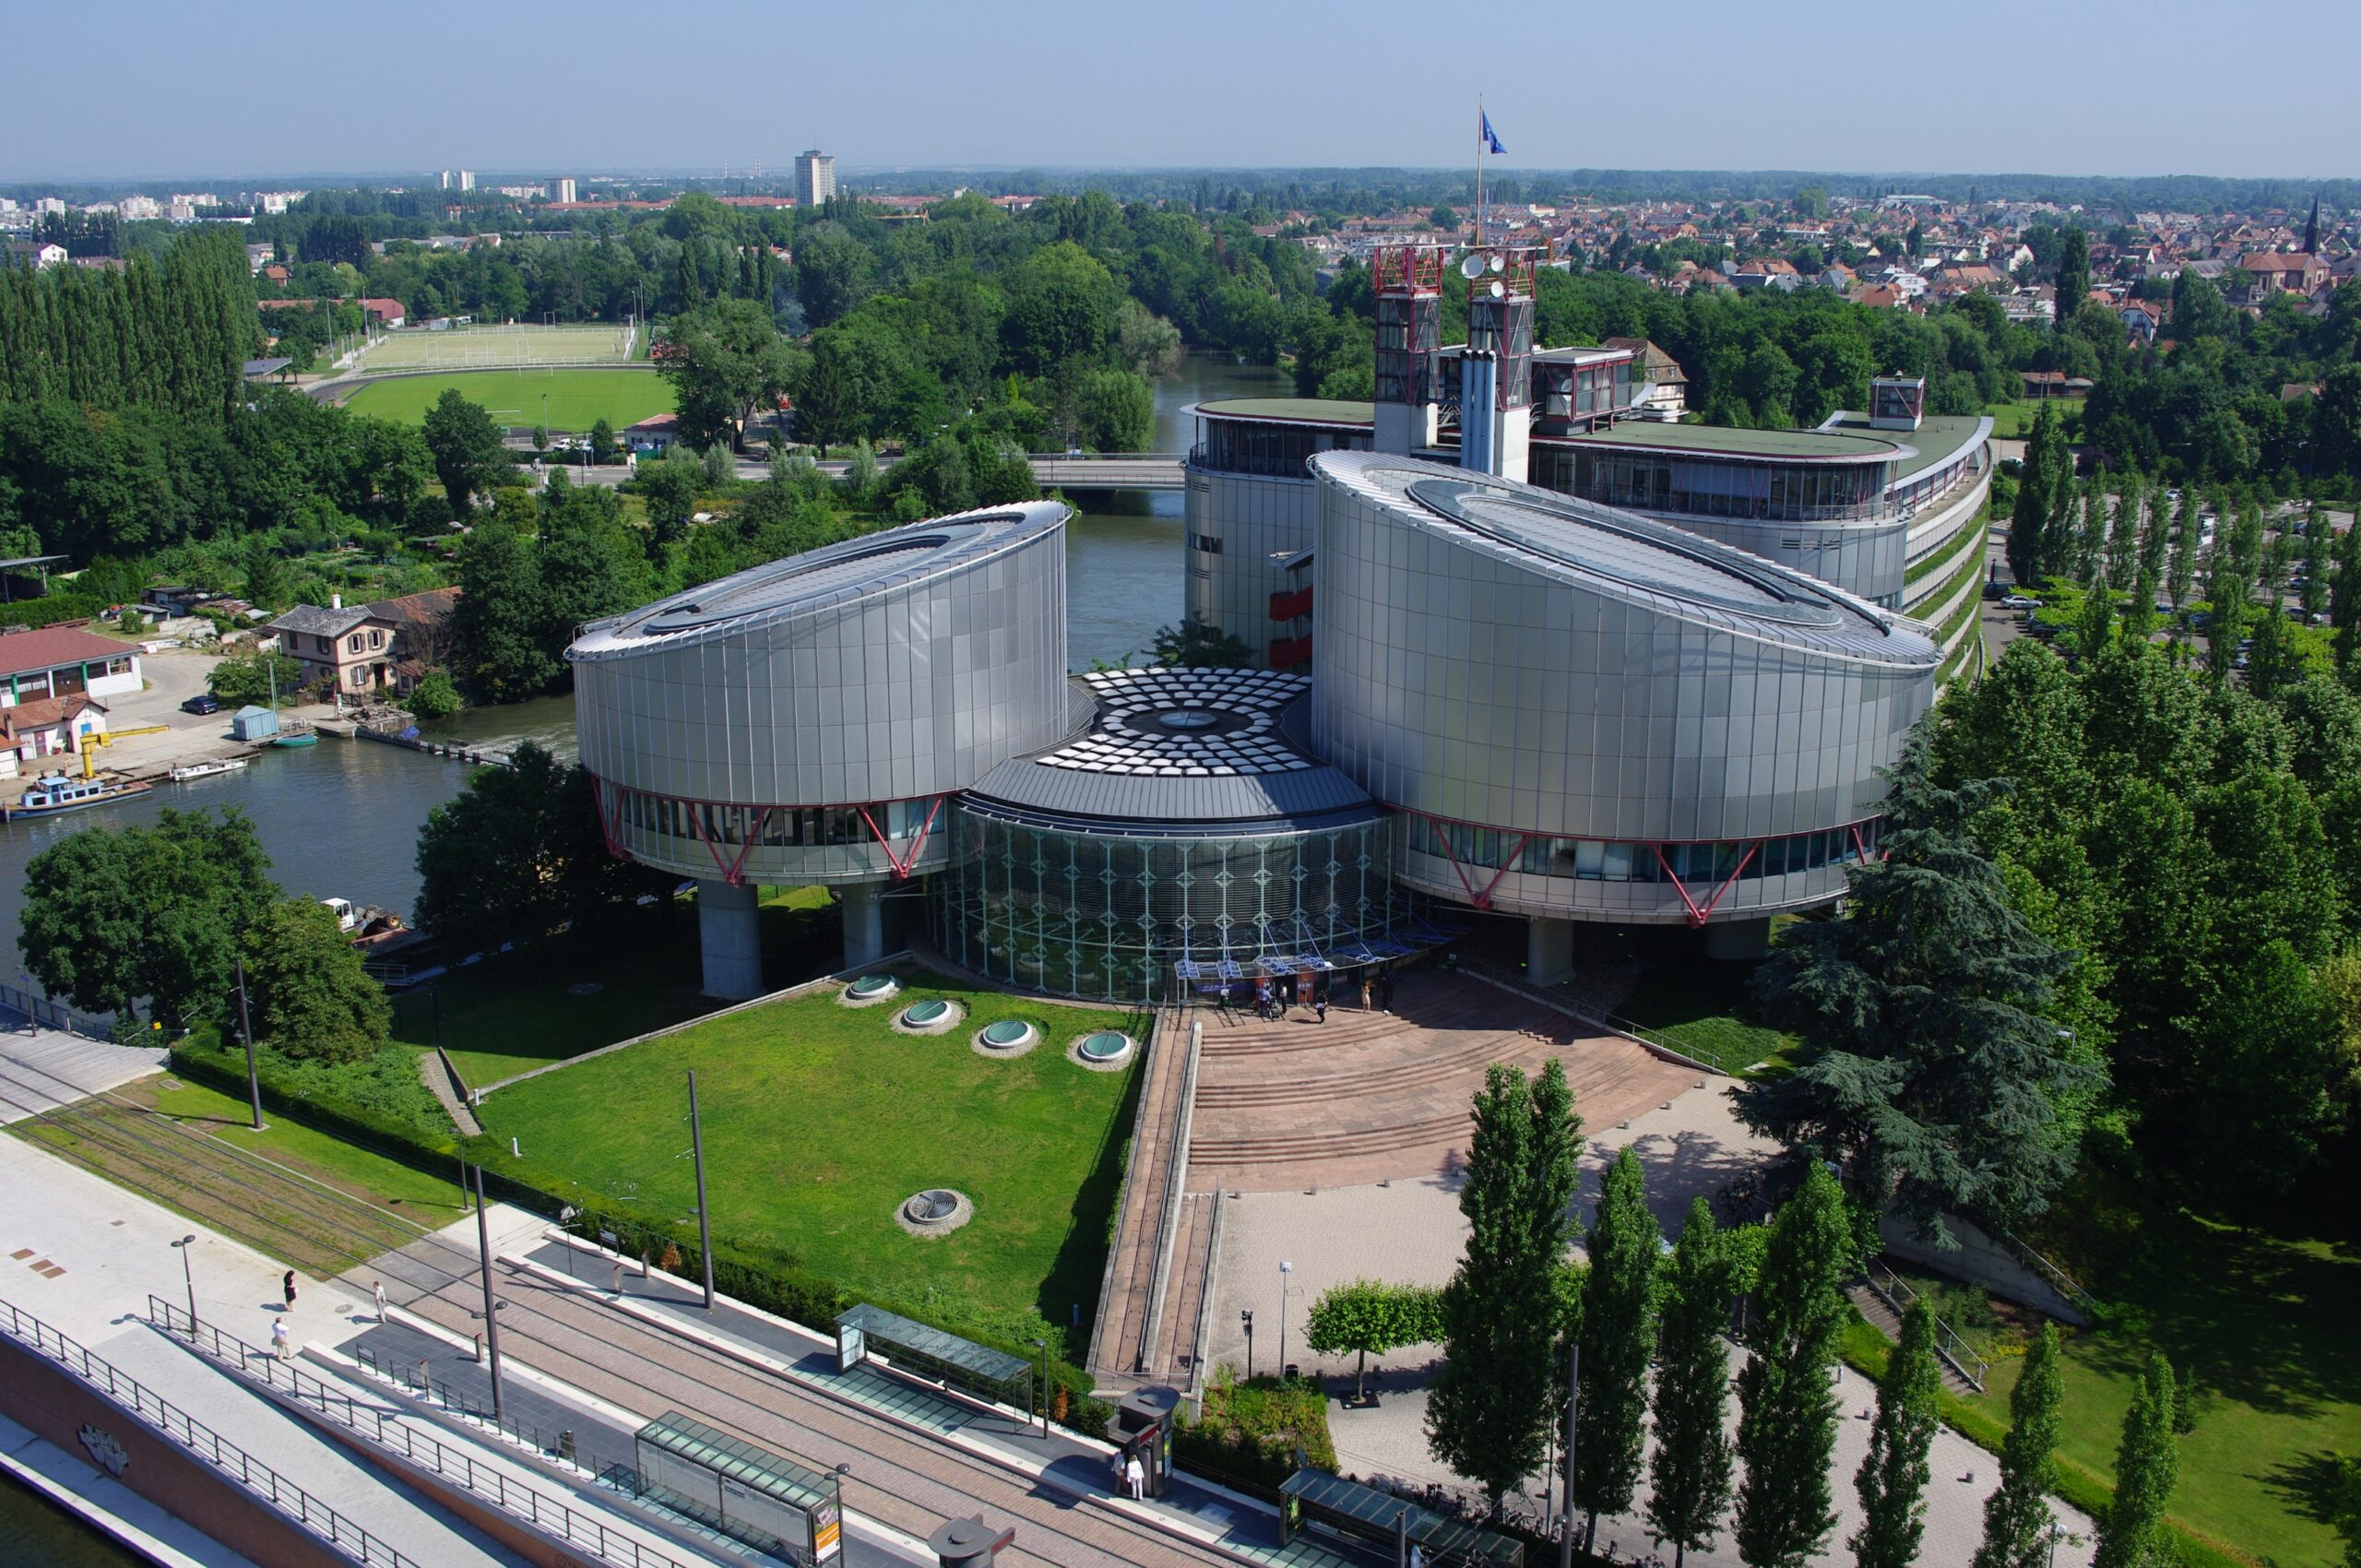 2020 Vision for the European Court of Human Rights [WP1139]